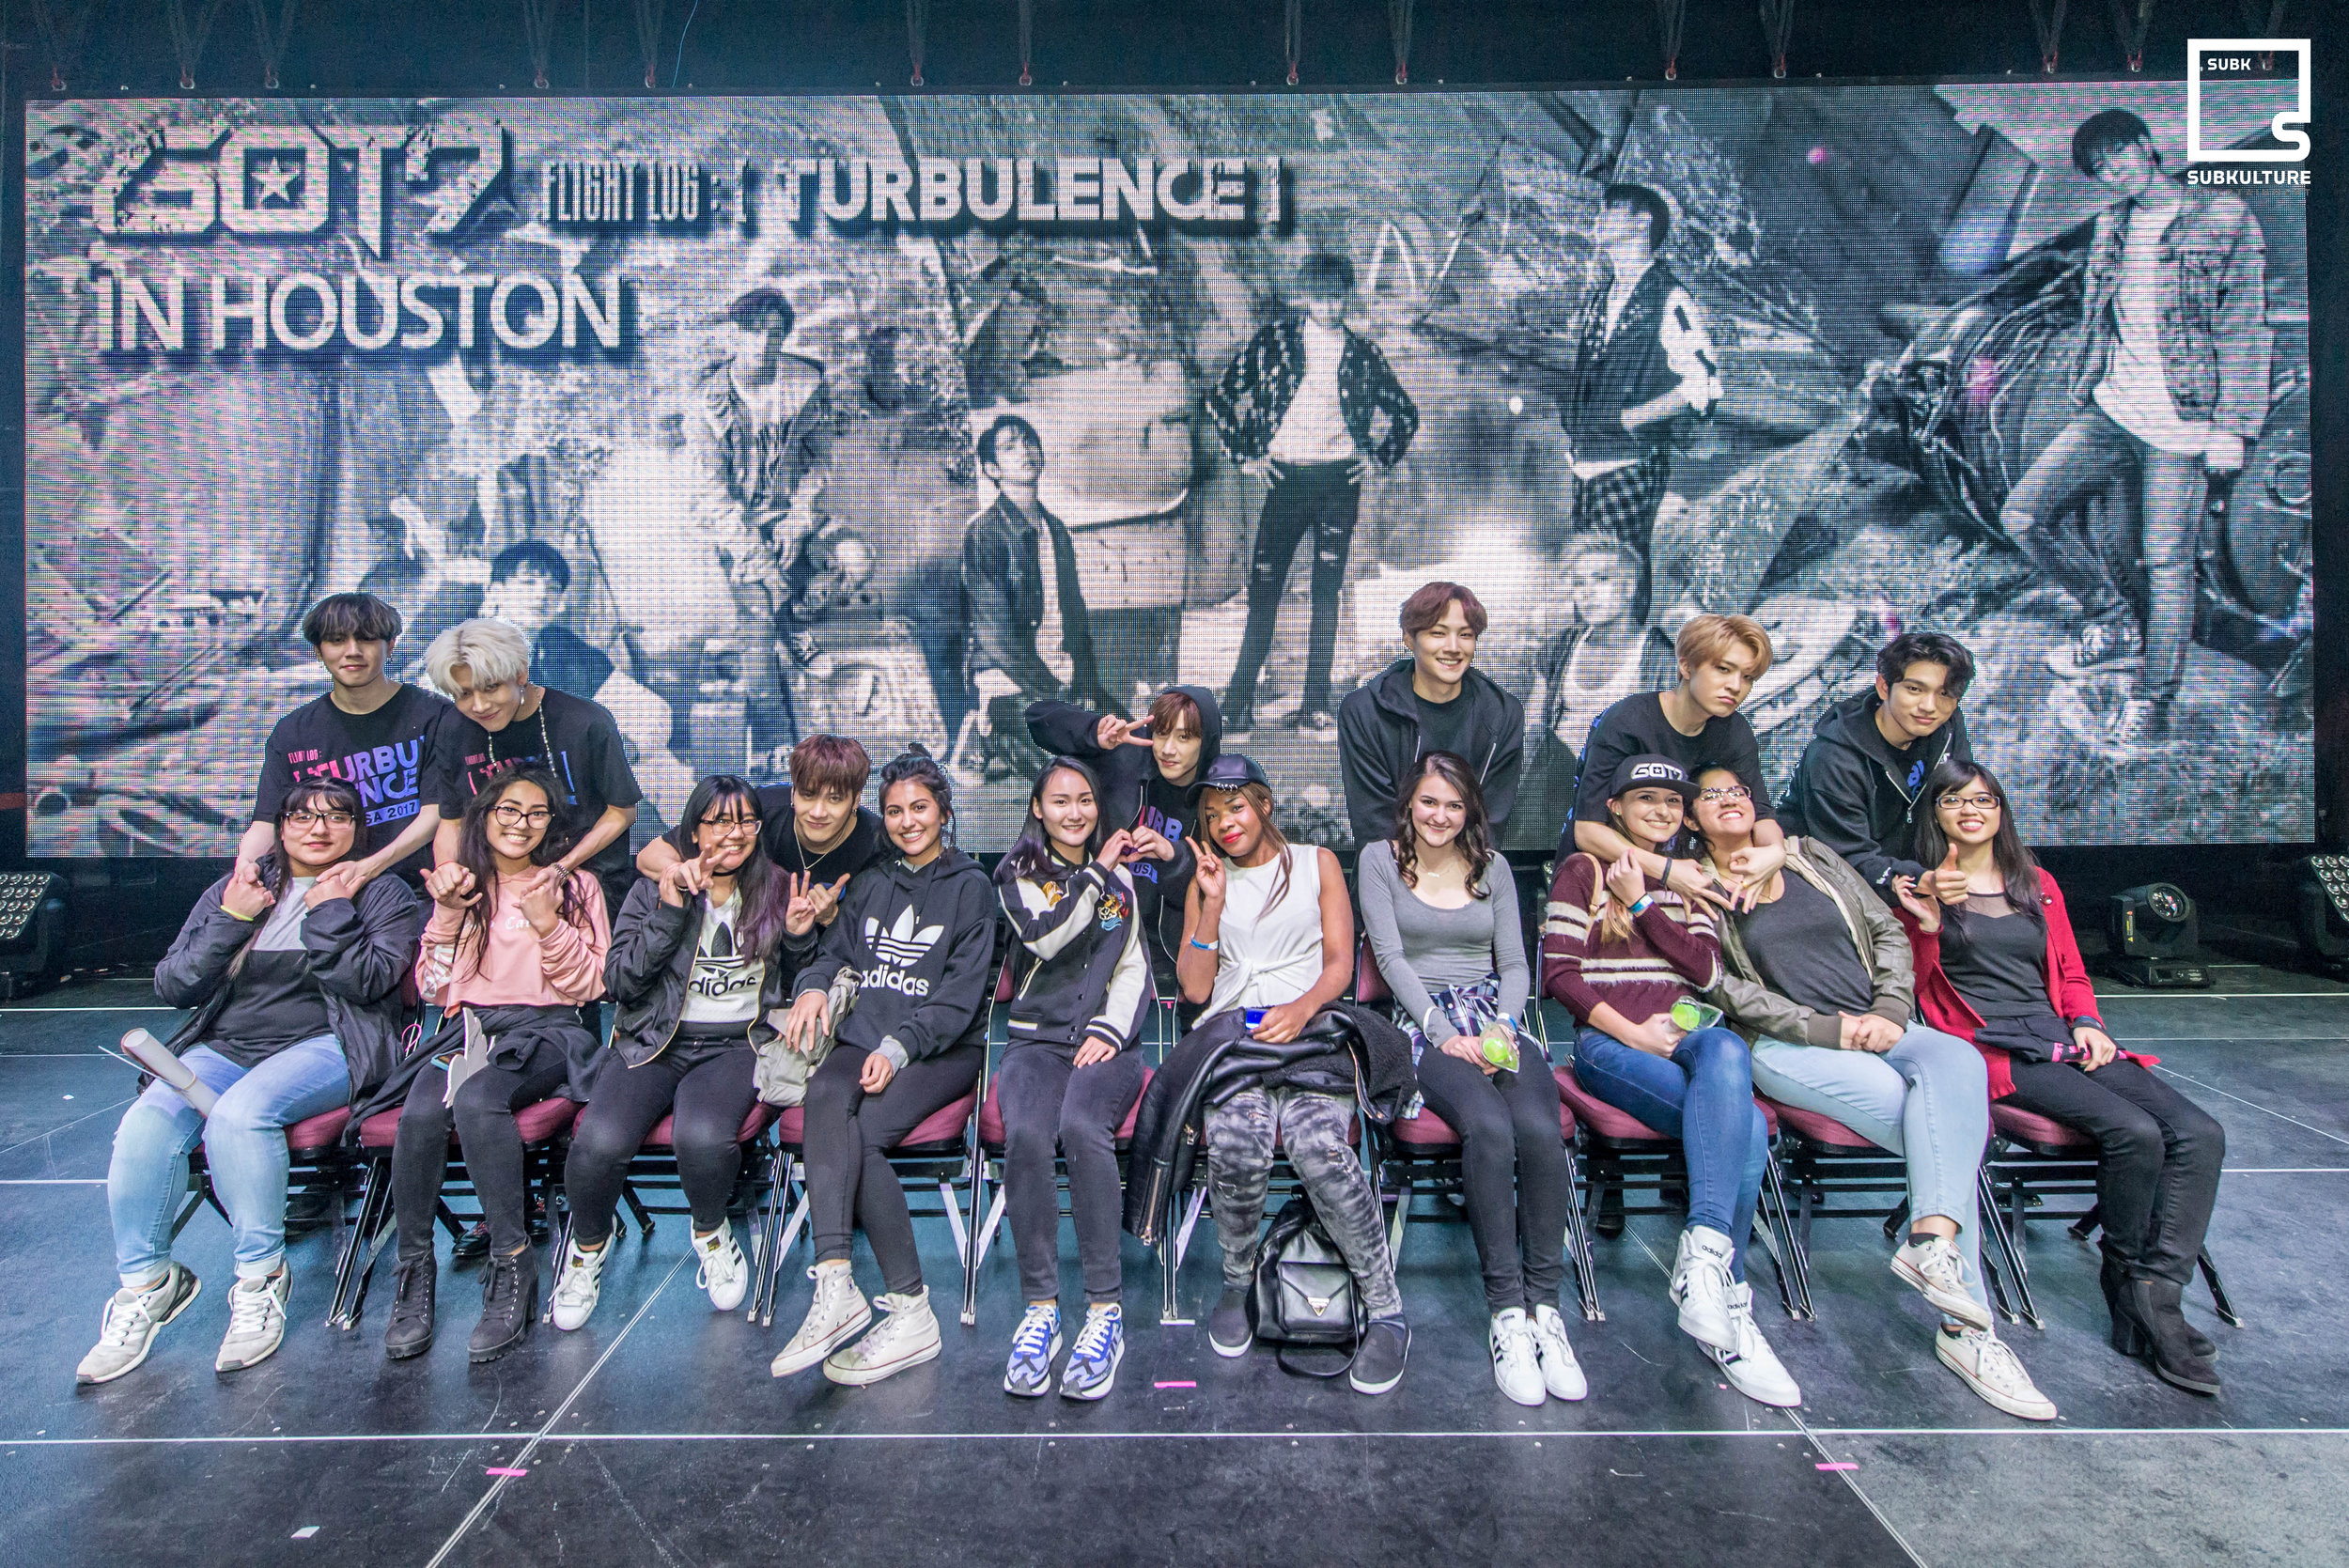 GOT7 Fan Photo Houston 2017 SubKulture Entertainment-3751 copy.jpg